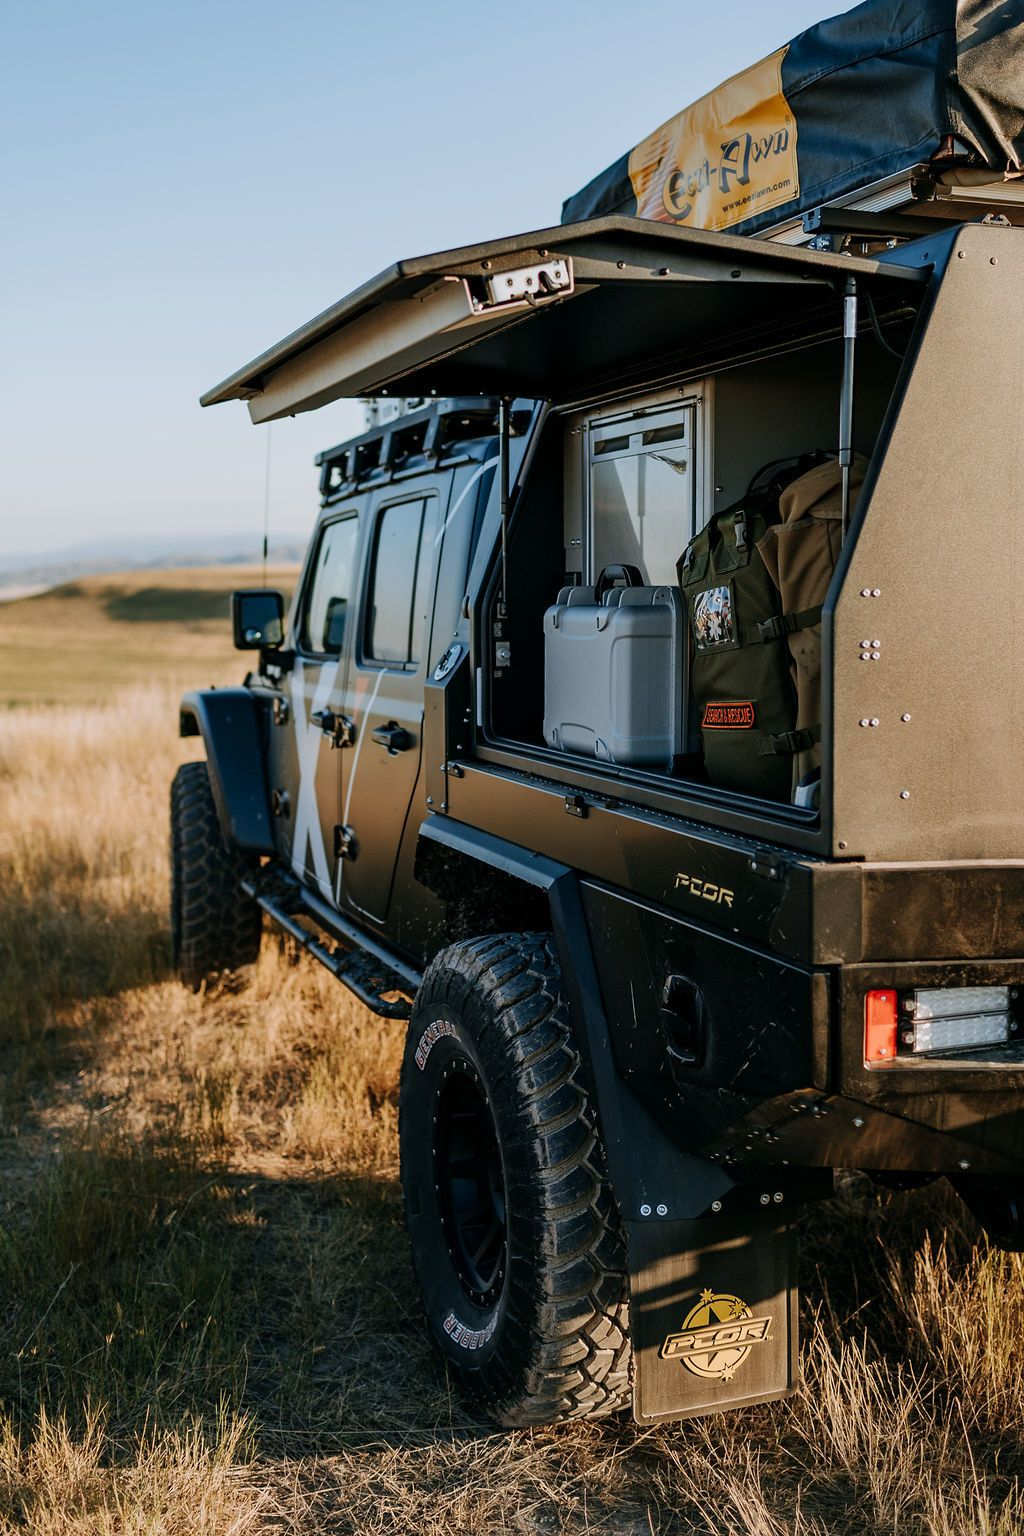 2020 Jeep Gladiator Build Expedition Overland Jeep Gladiator Gladiator Overland Vehicles